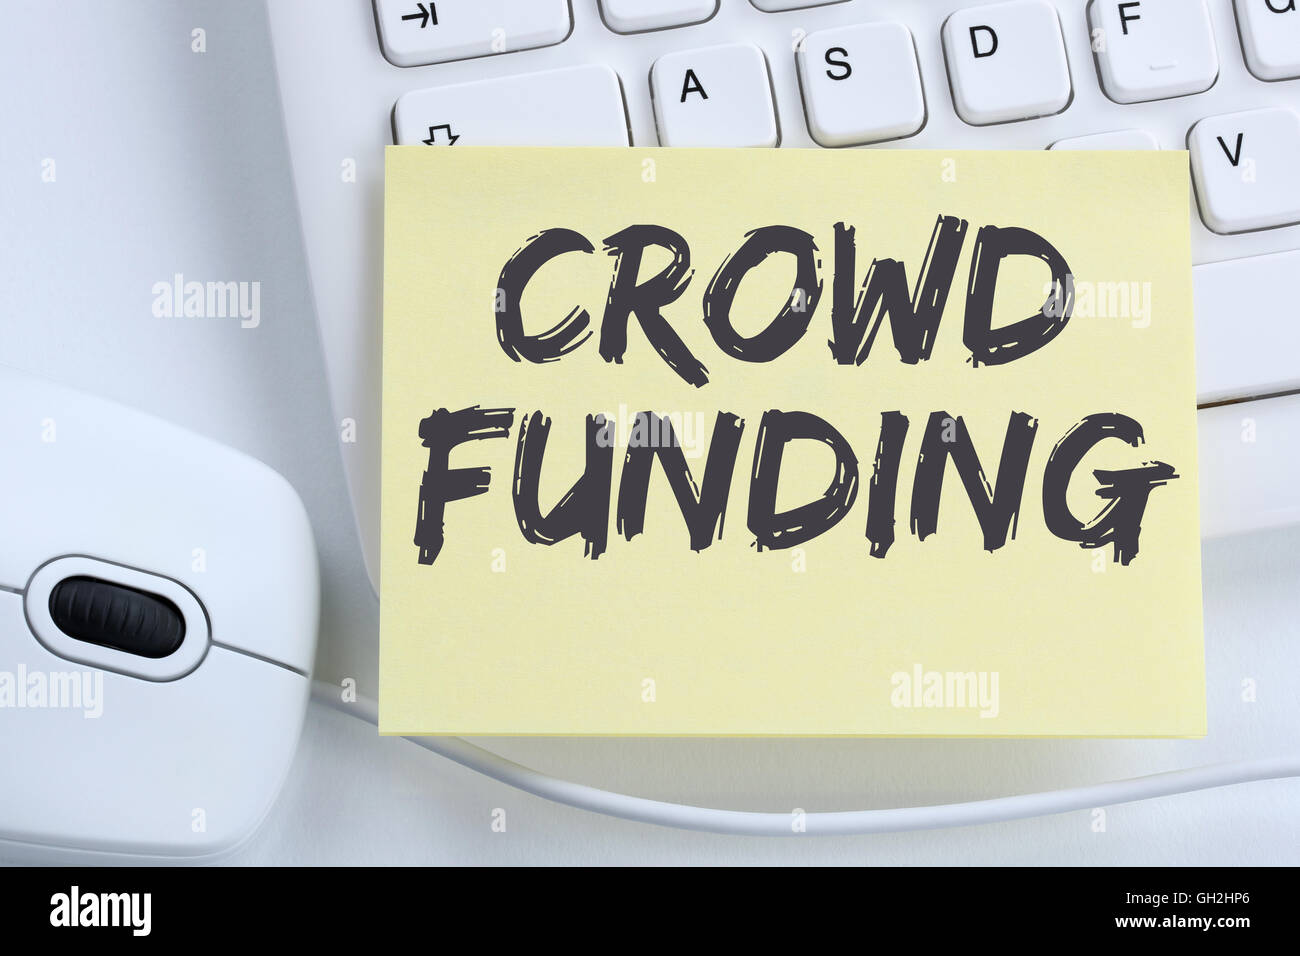 Crowd funding crowdfunding collecting money online investment internet business concept office computer keyboard - Stock Image